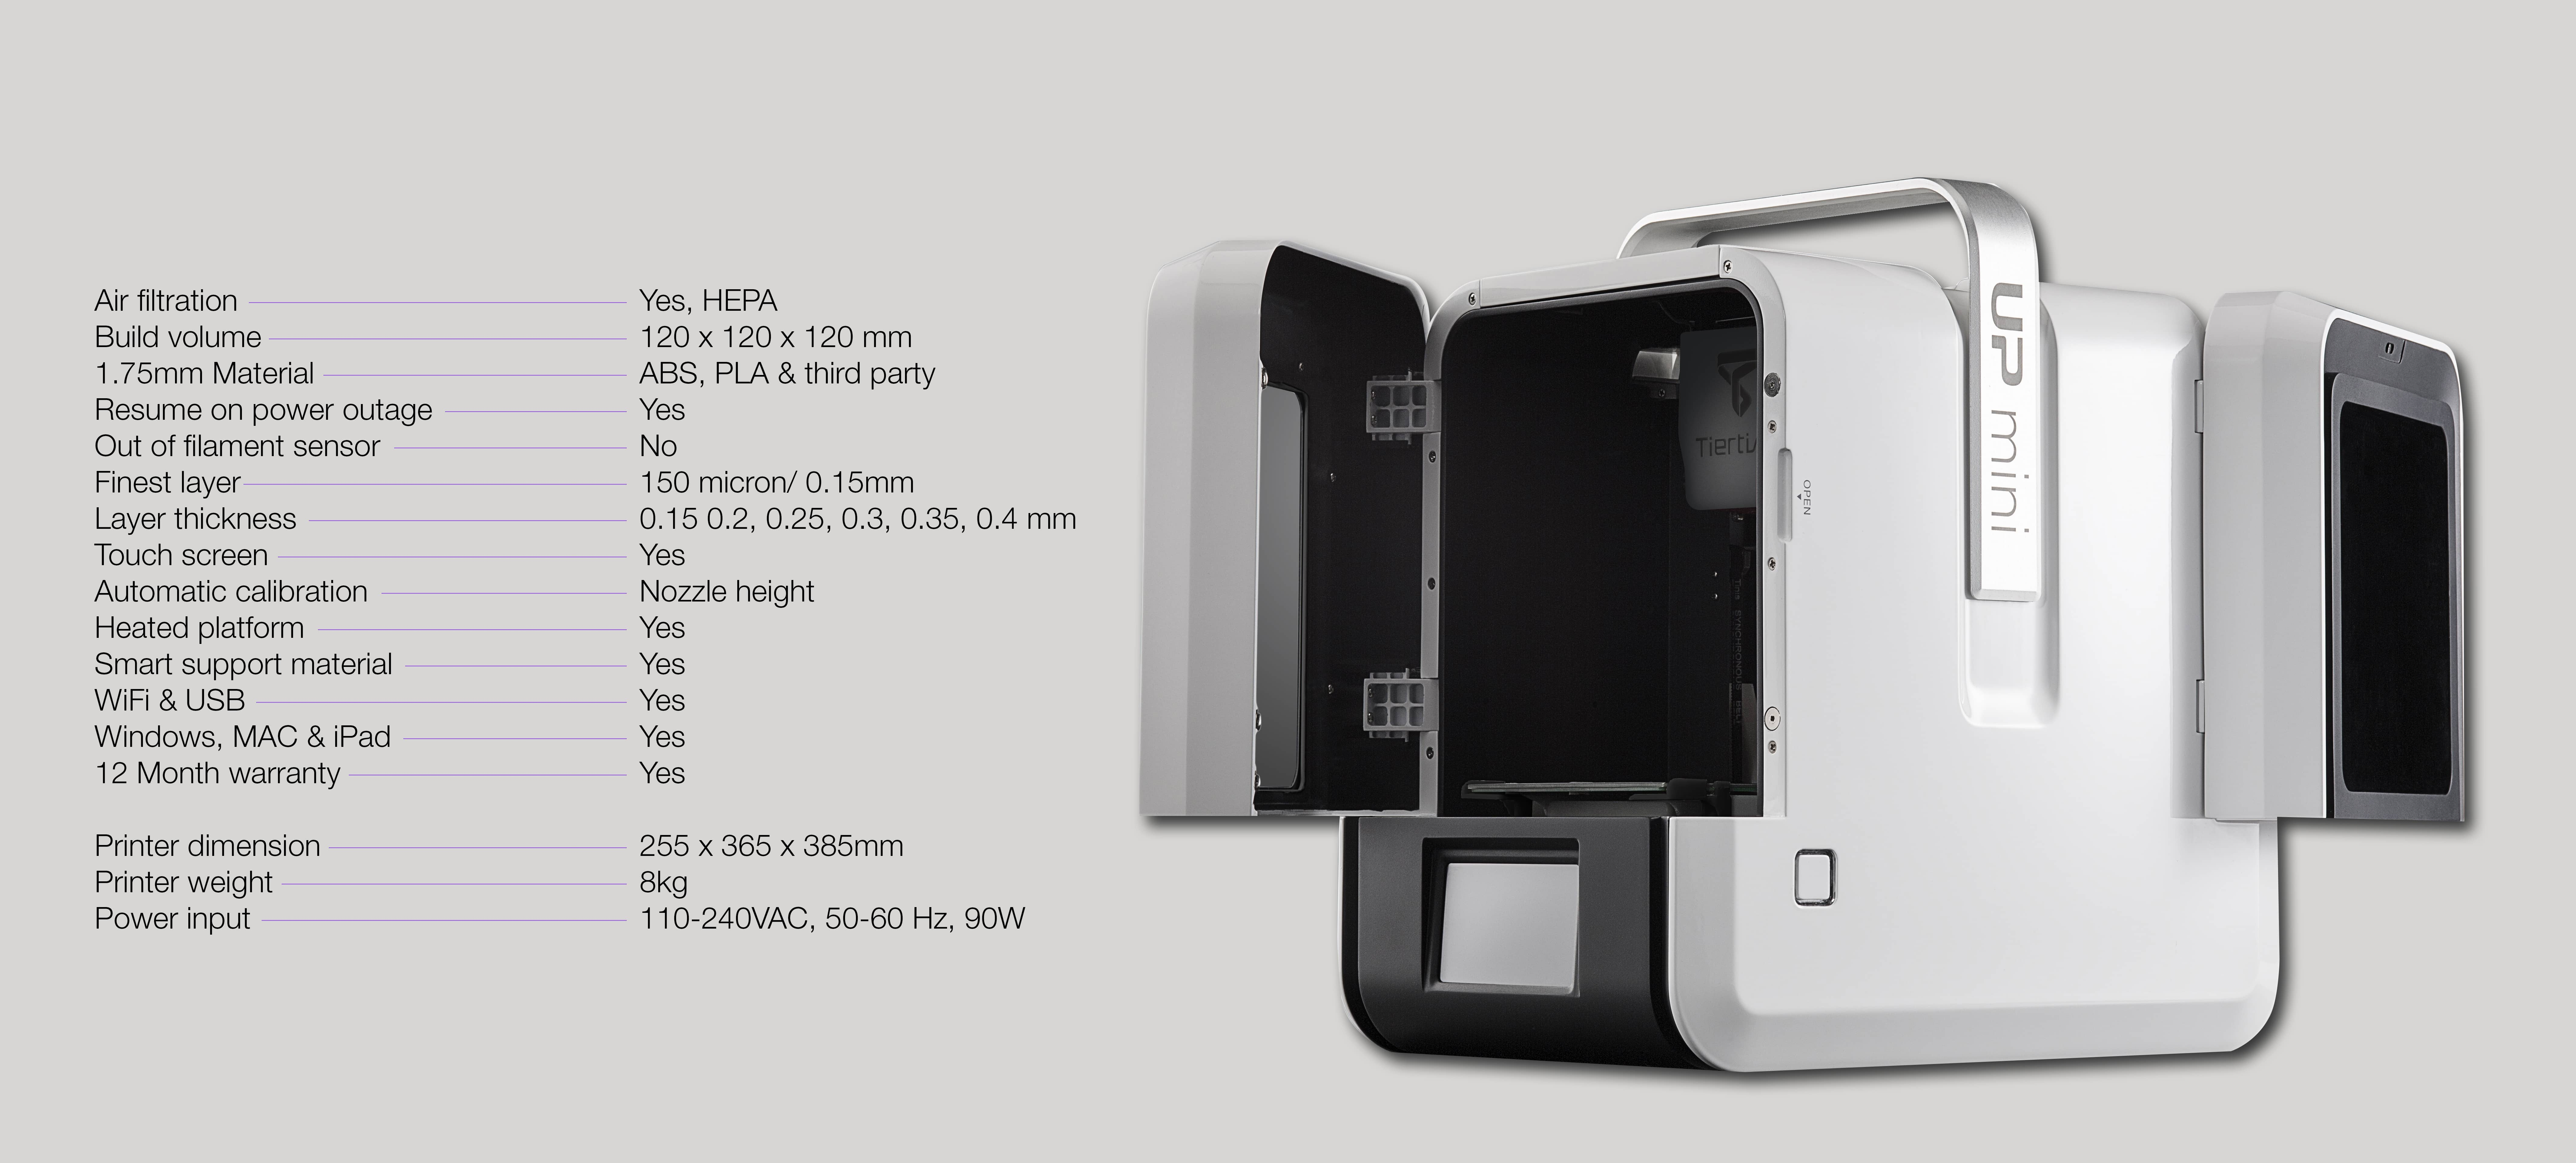 Full 3D printing specifications for UP Mini 2 3D printer